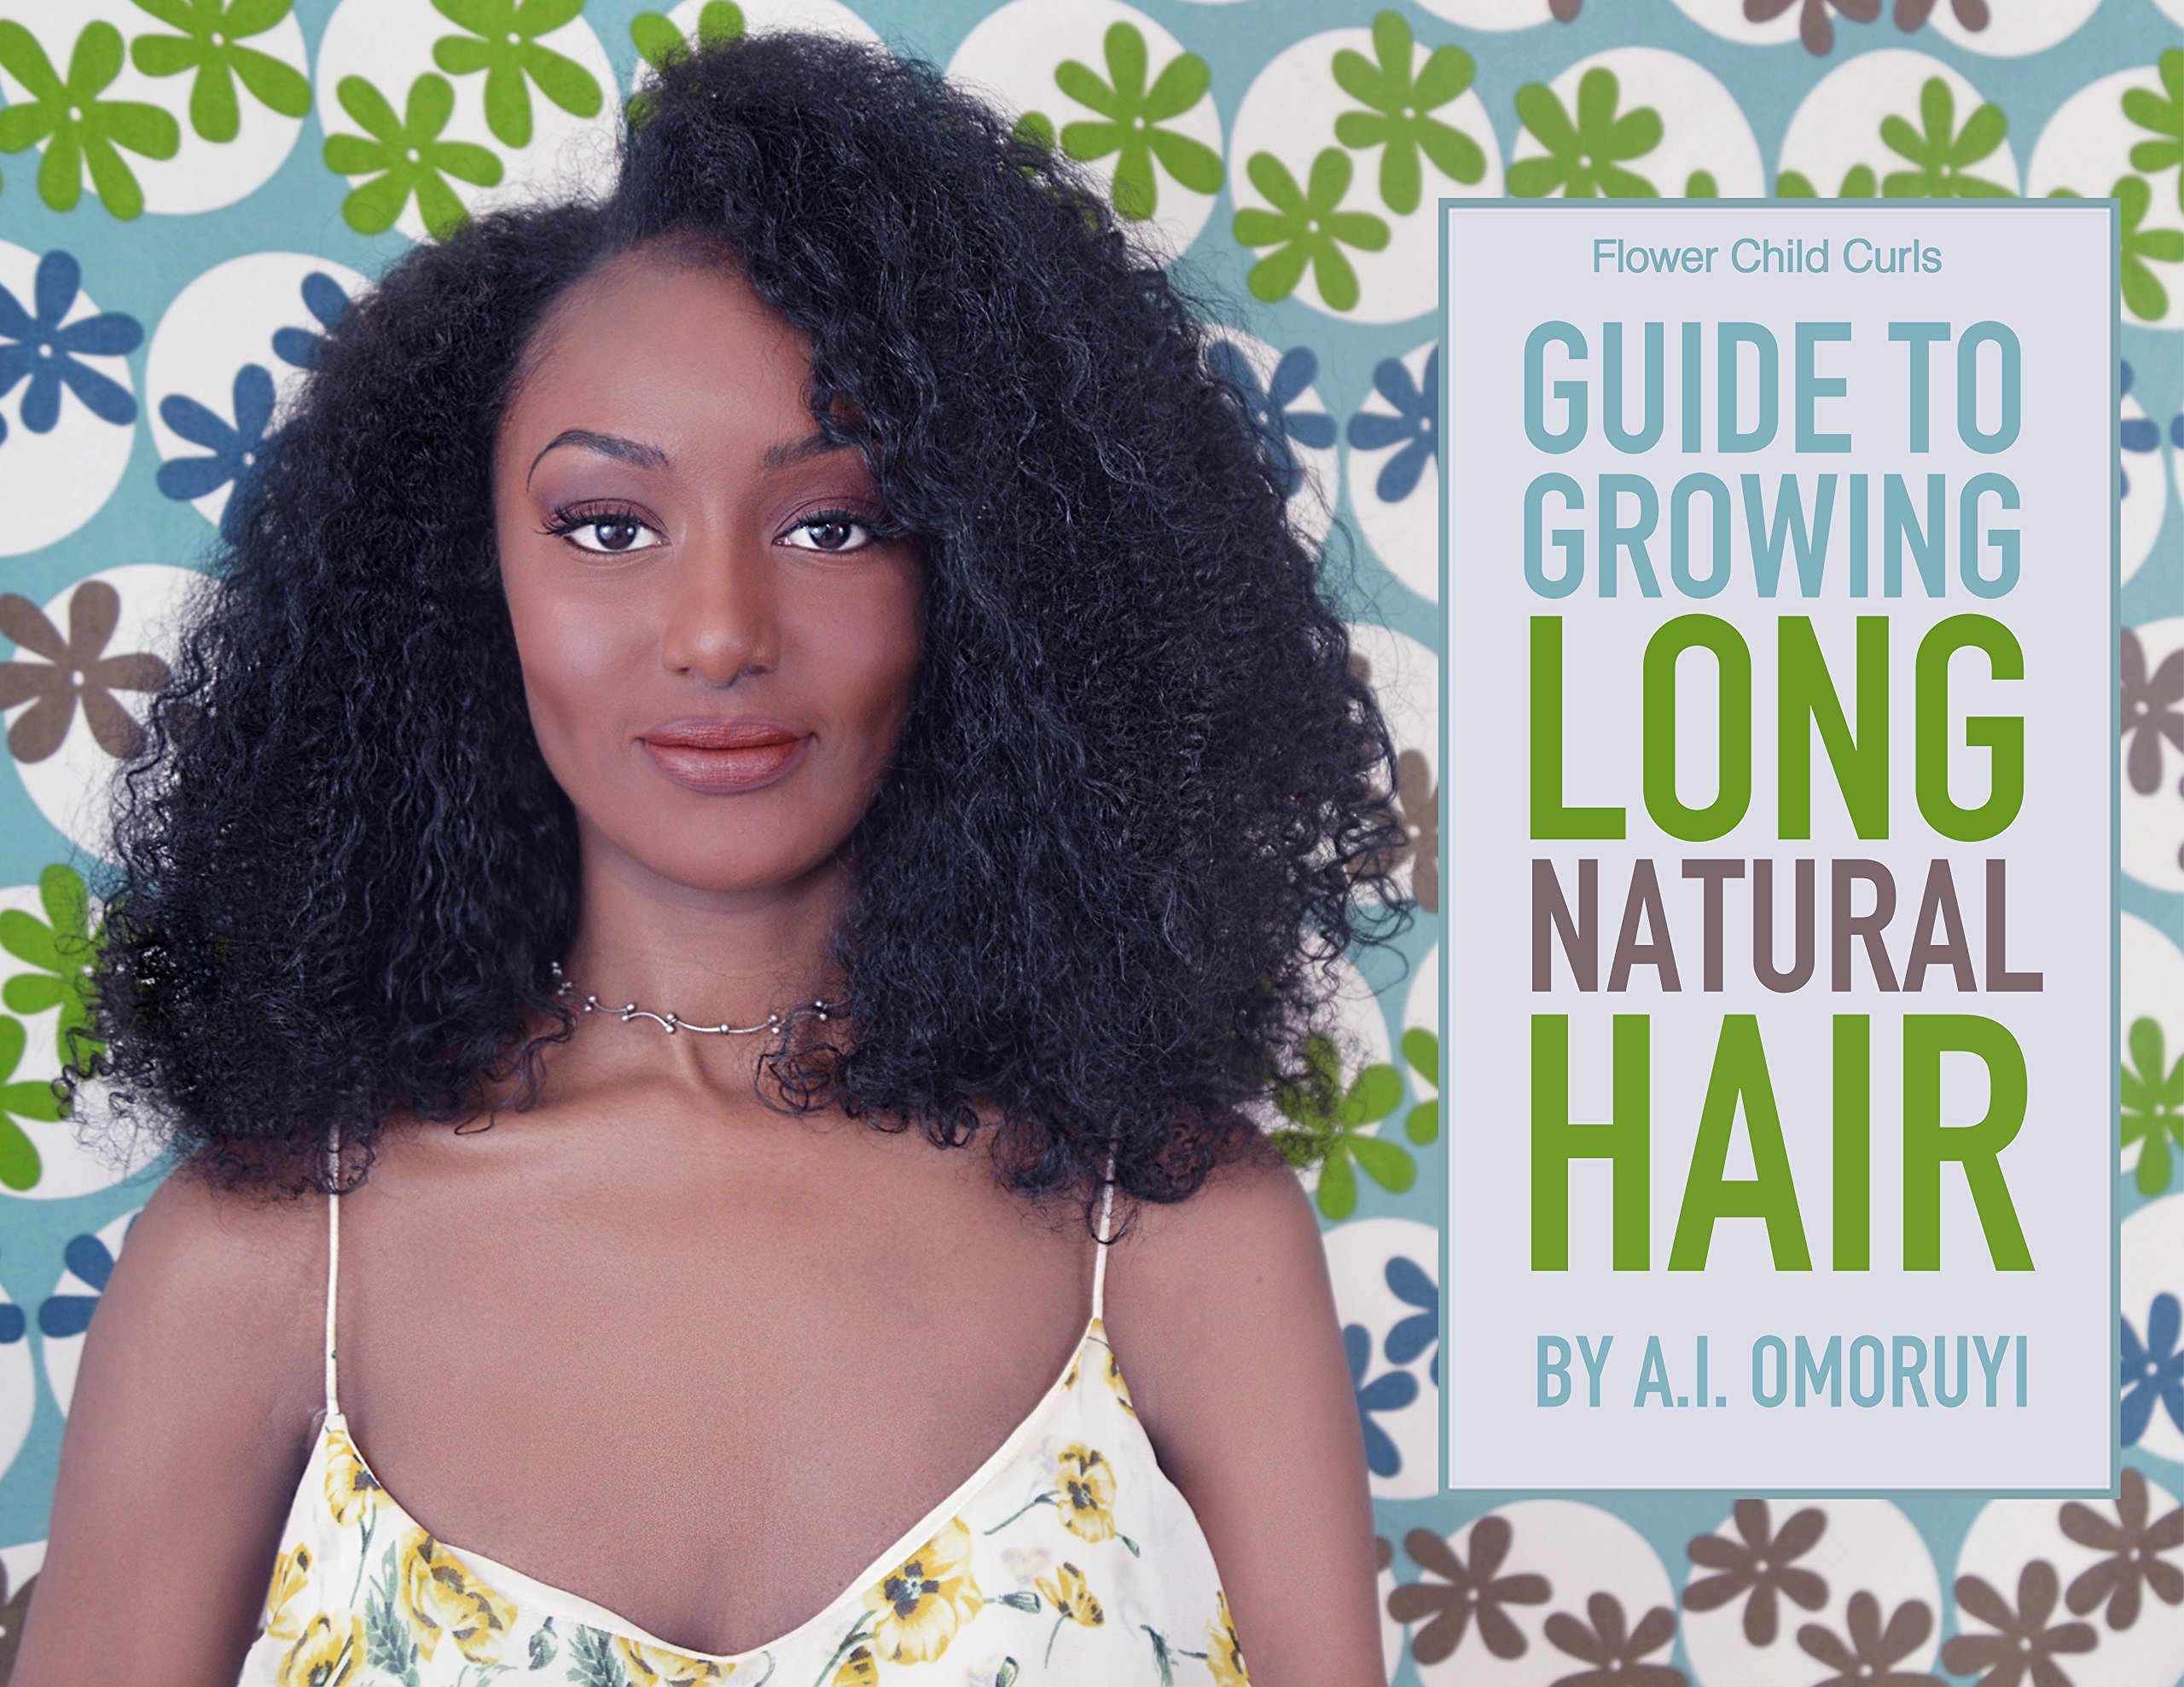 Guide To Growing Long Natural Hair ebook